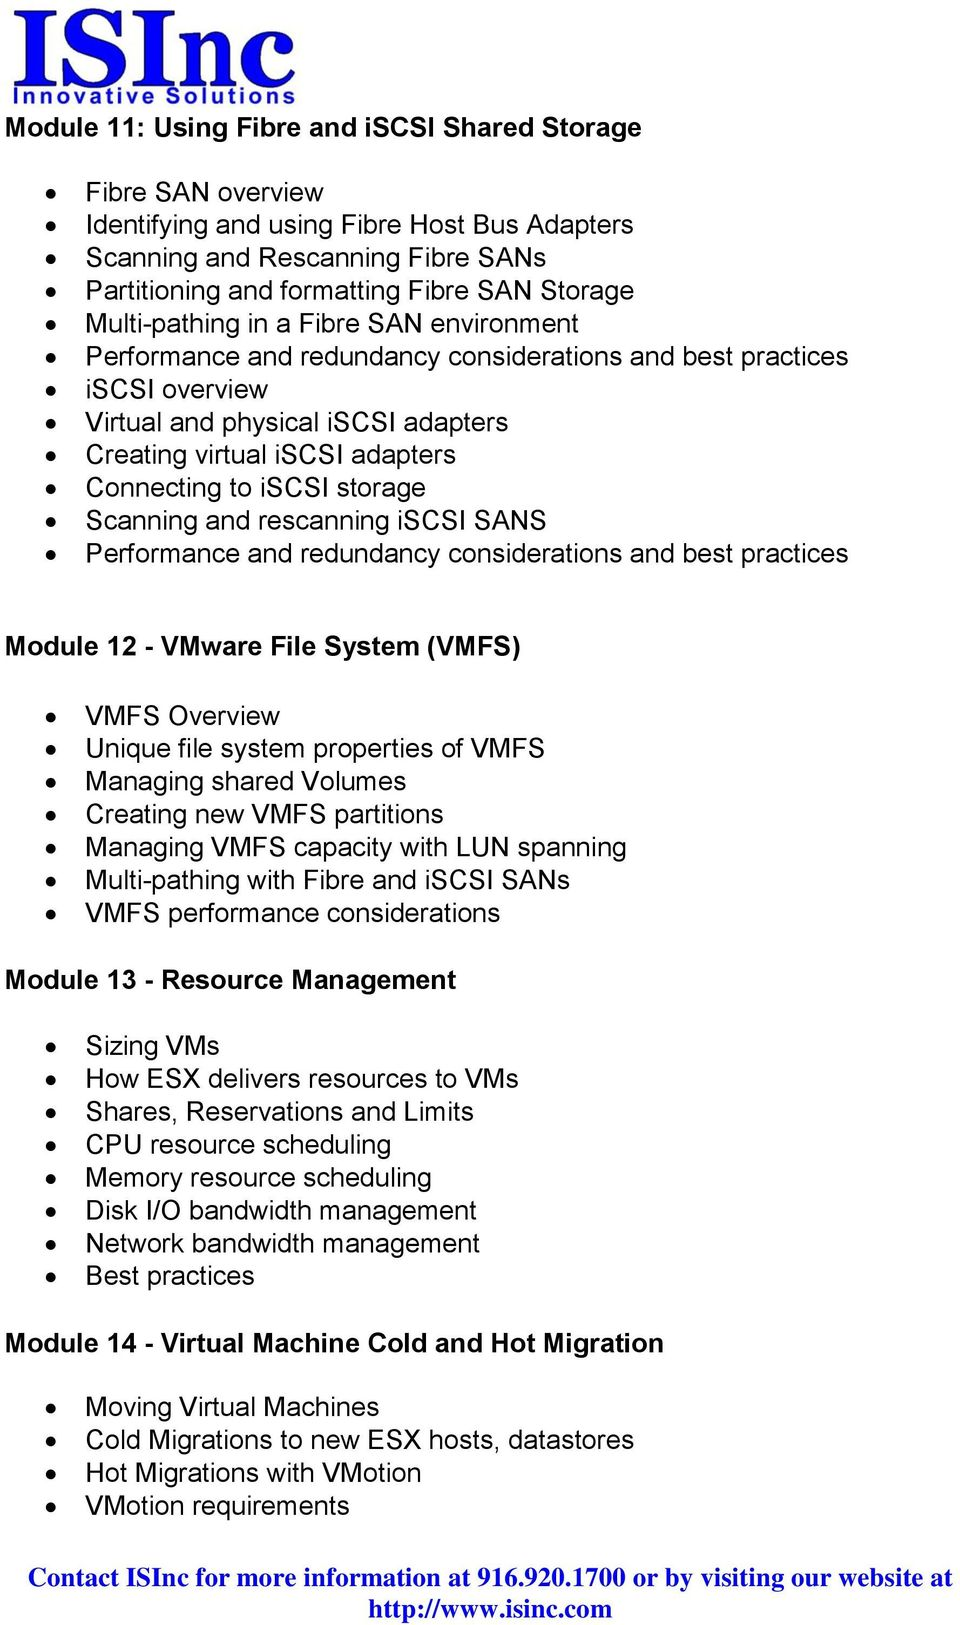 iscsi storage Scanning and rescanning iscsi SANS Performance and redundancy considerations and best practices Module 12 - VMware File System (VMFS) VMFS Overview Unique file system properties of VMFS